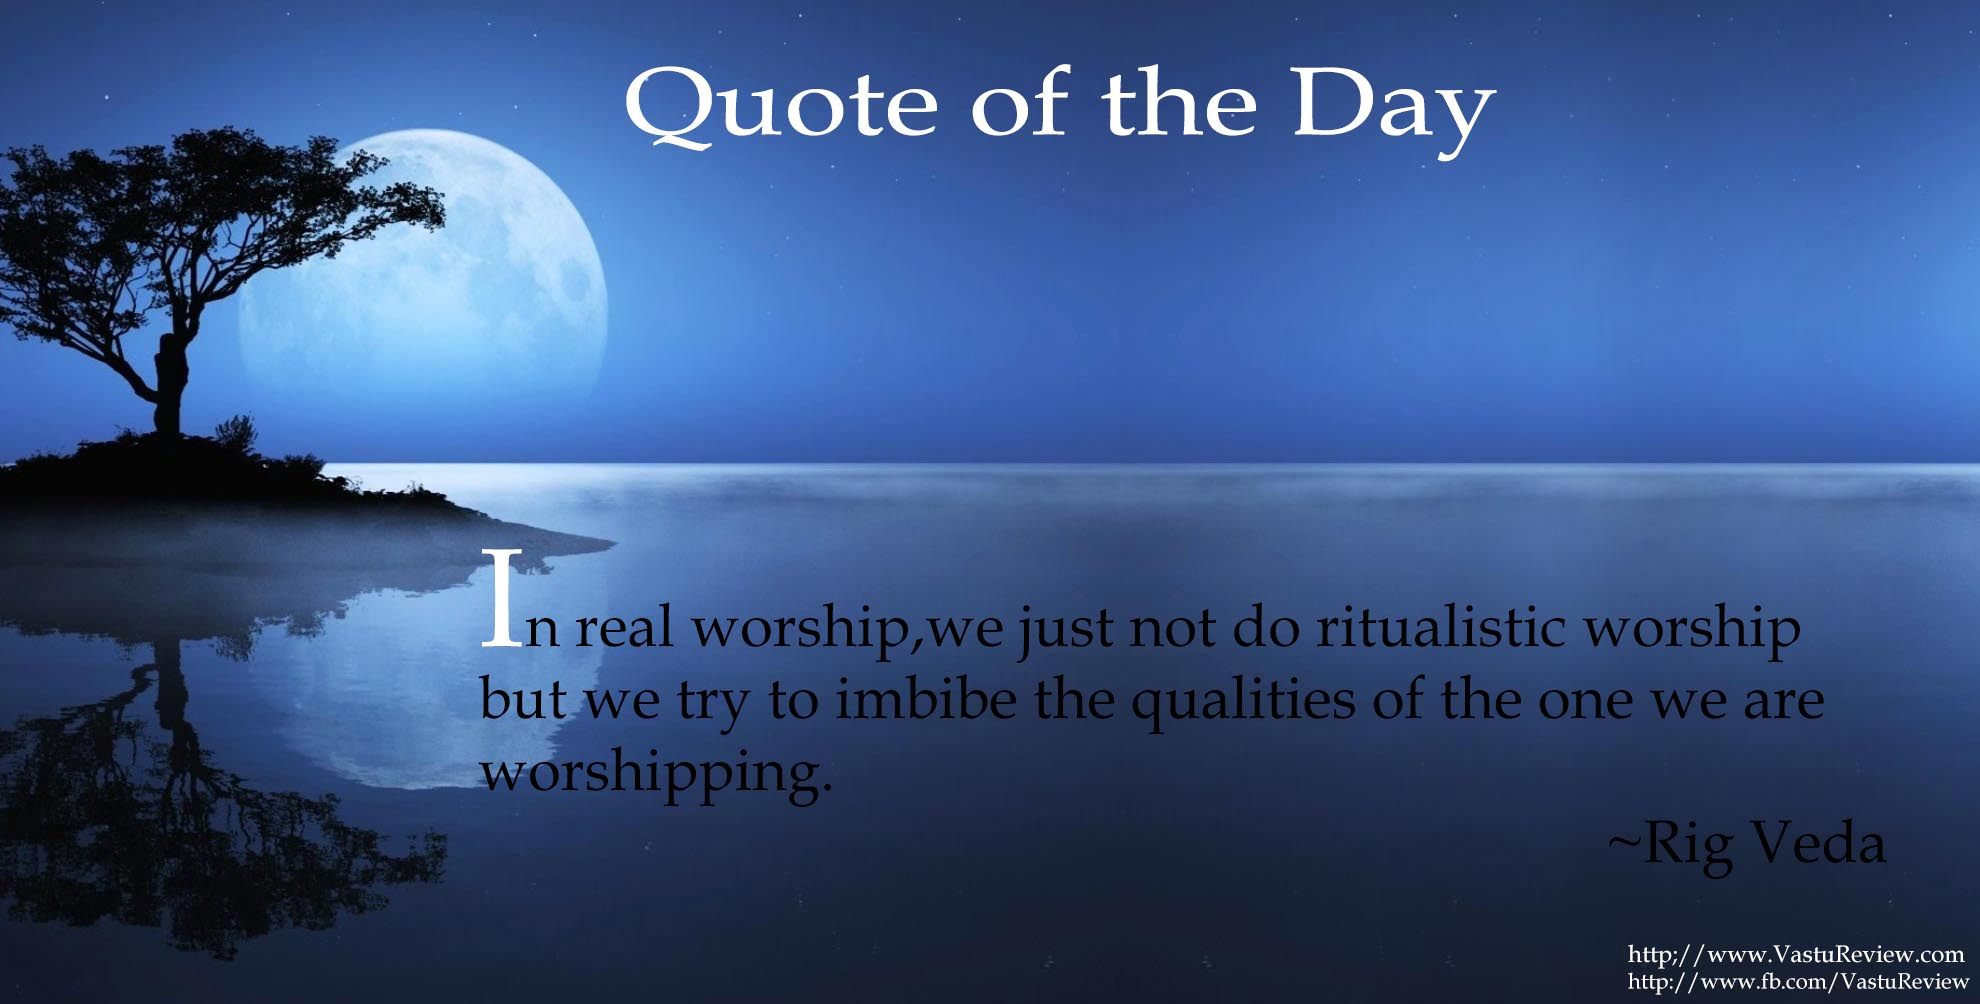 idolatry and quote An ocean of swami vivekananda quotes in this article we'll make a collection swami vivekananda's quotes and comment son idol worship or idolatry and image worship.